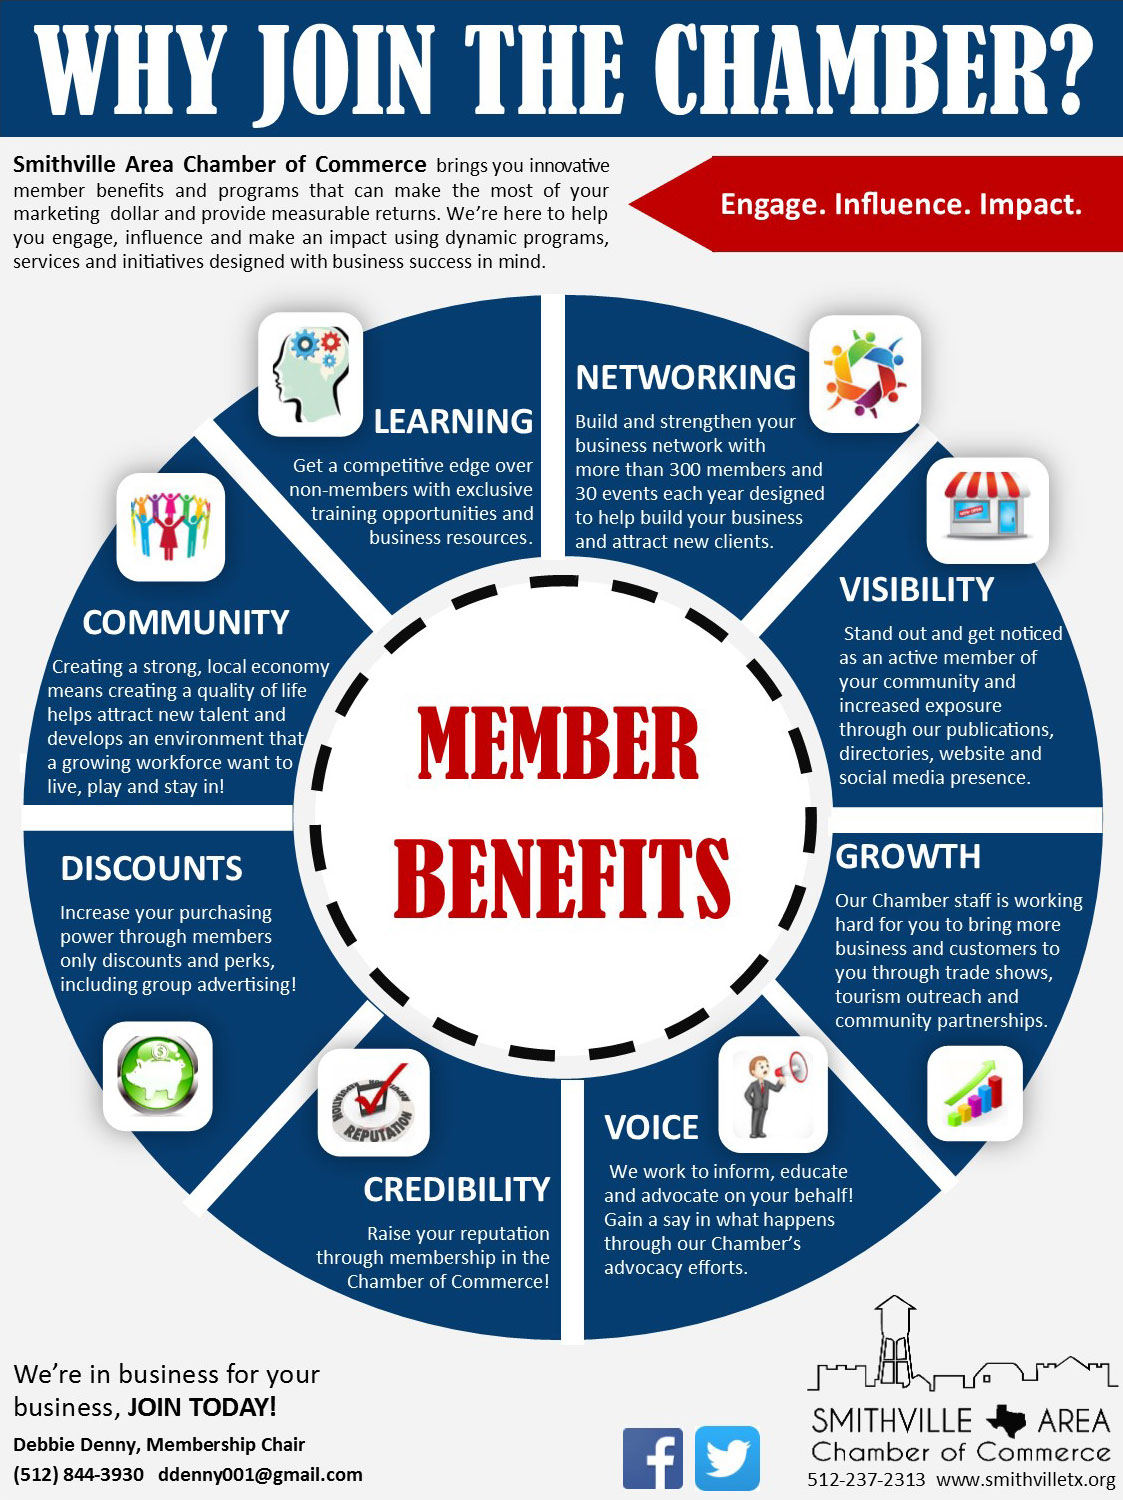 why join the chamber infographic